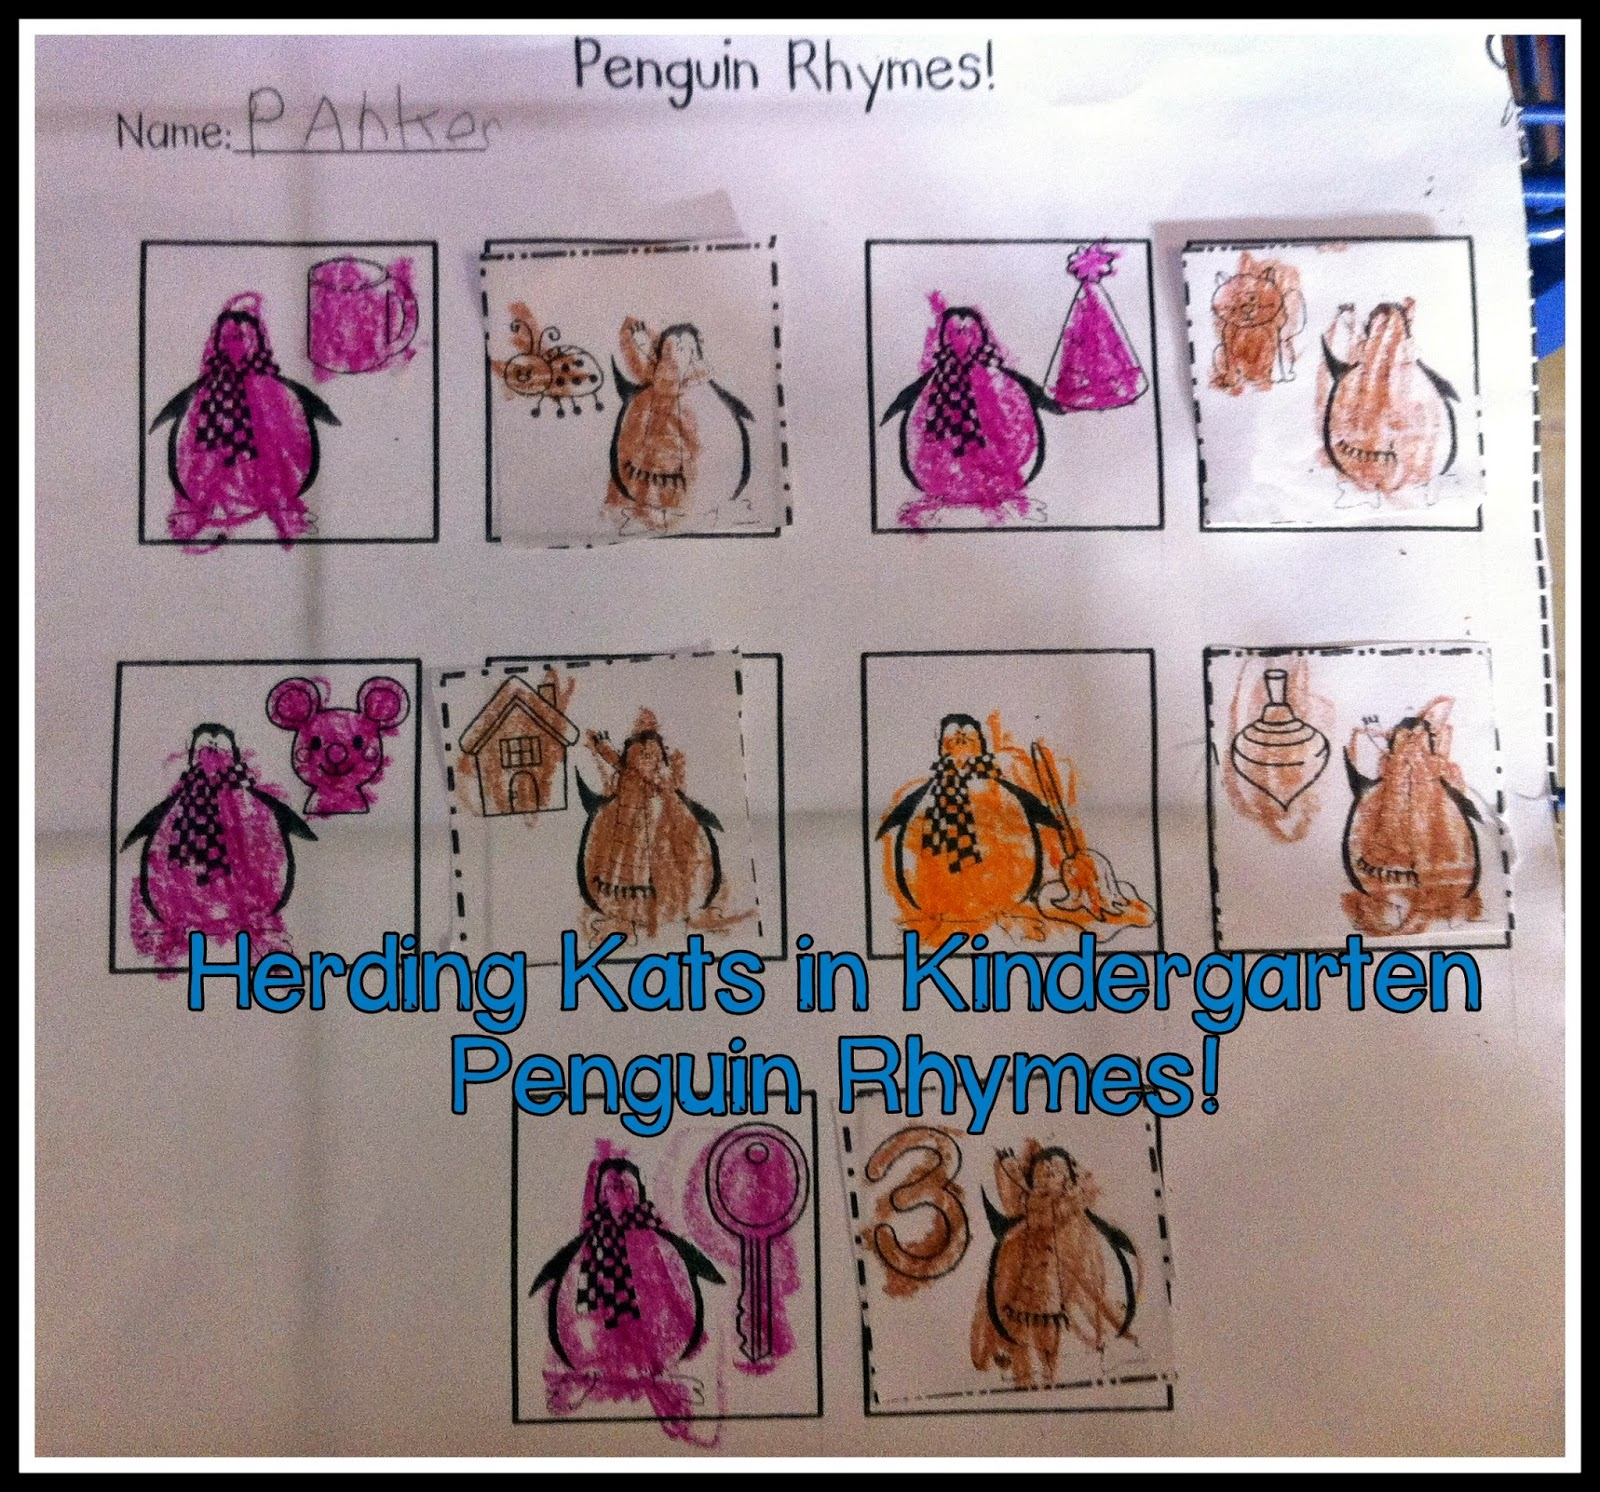 Herding Kats In Kindergarten Penguins